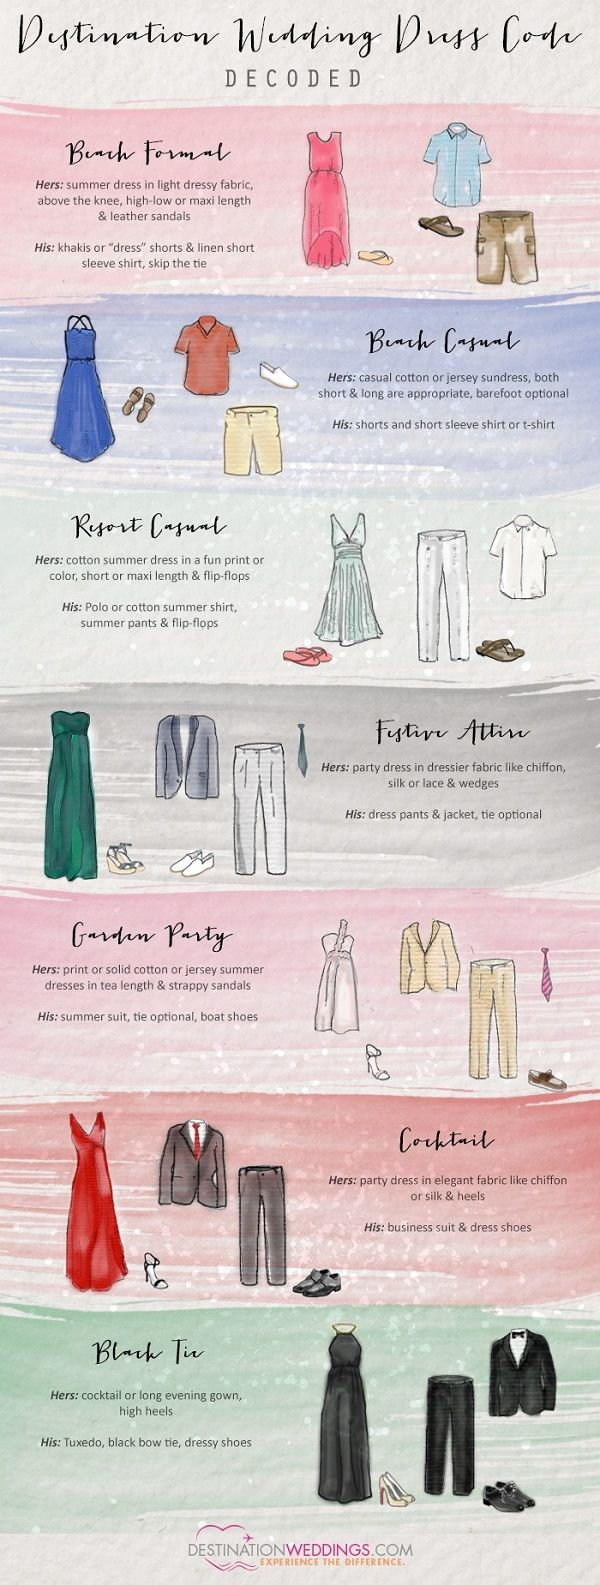 Destination Wedding Dress Code Decoded With Images